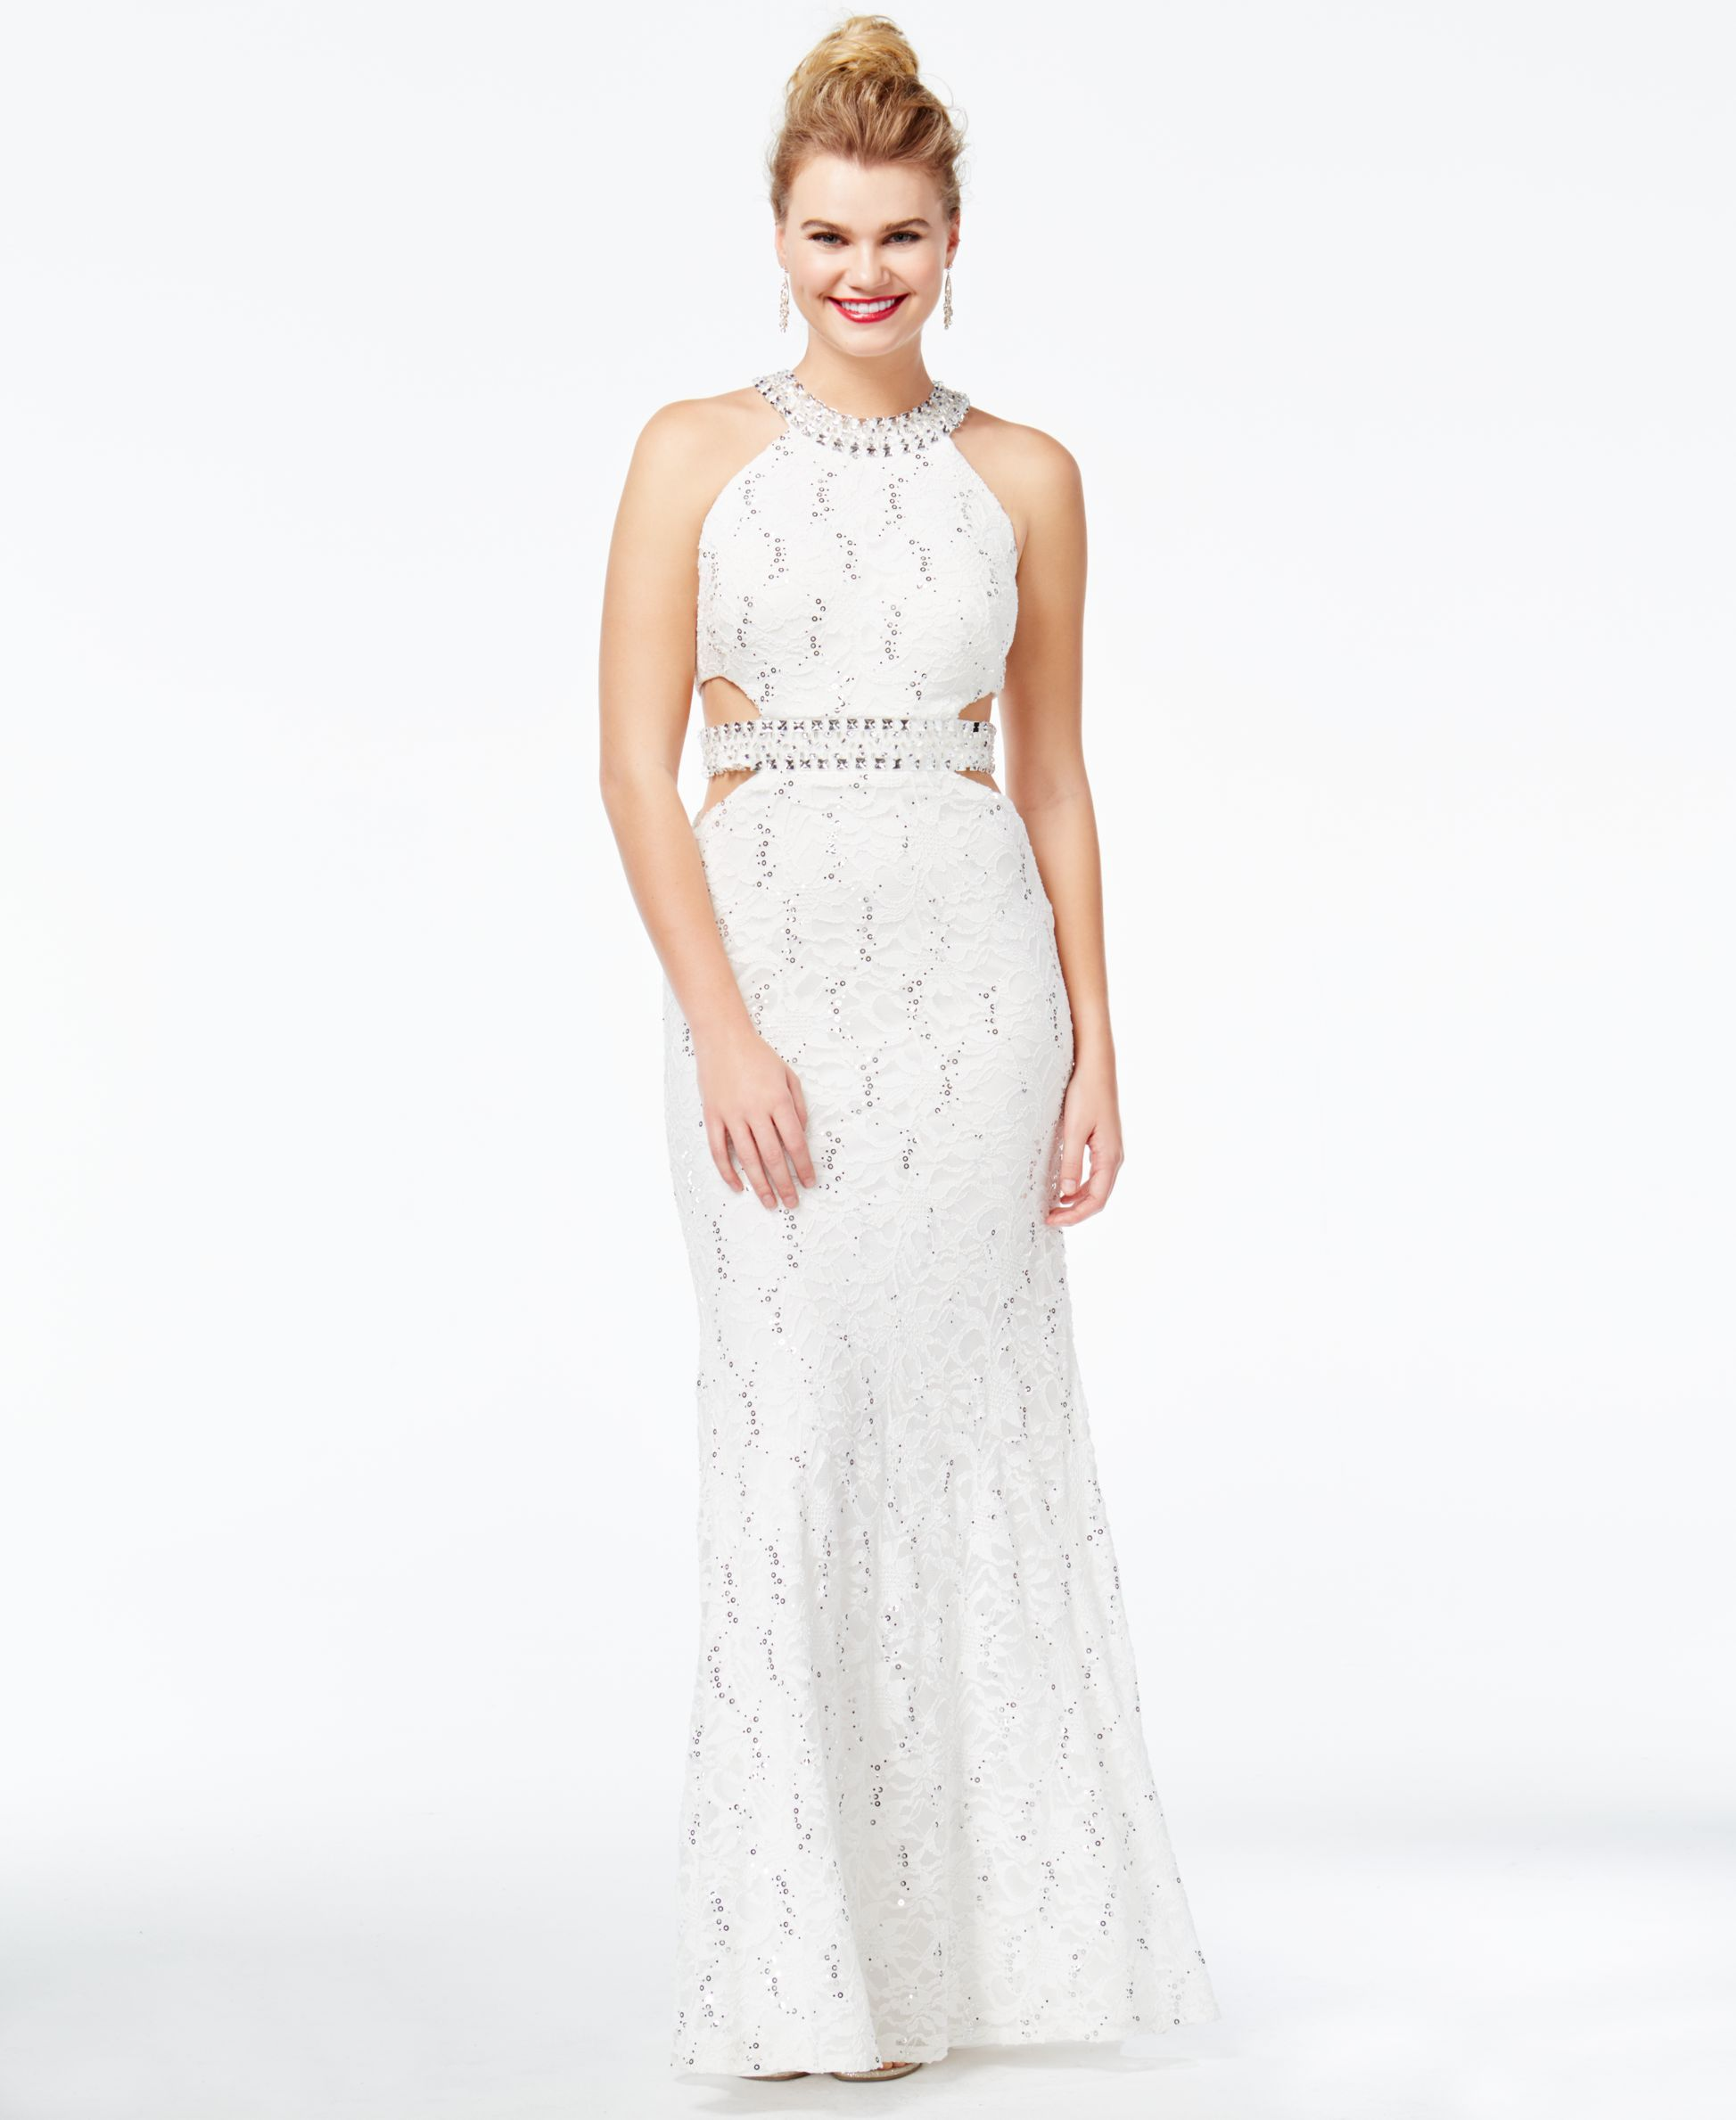 Lace dress macys  B Darlin Juniorsu Cutout Sequined Lace Gown  Products  Pinterest